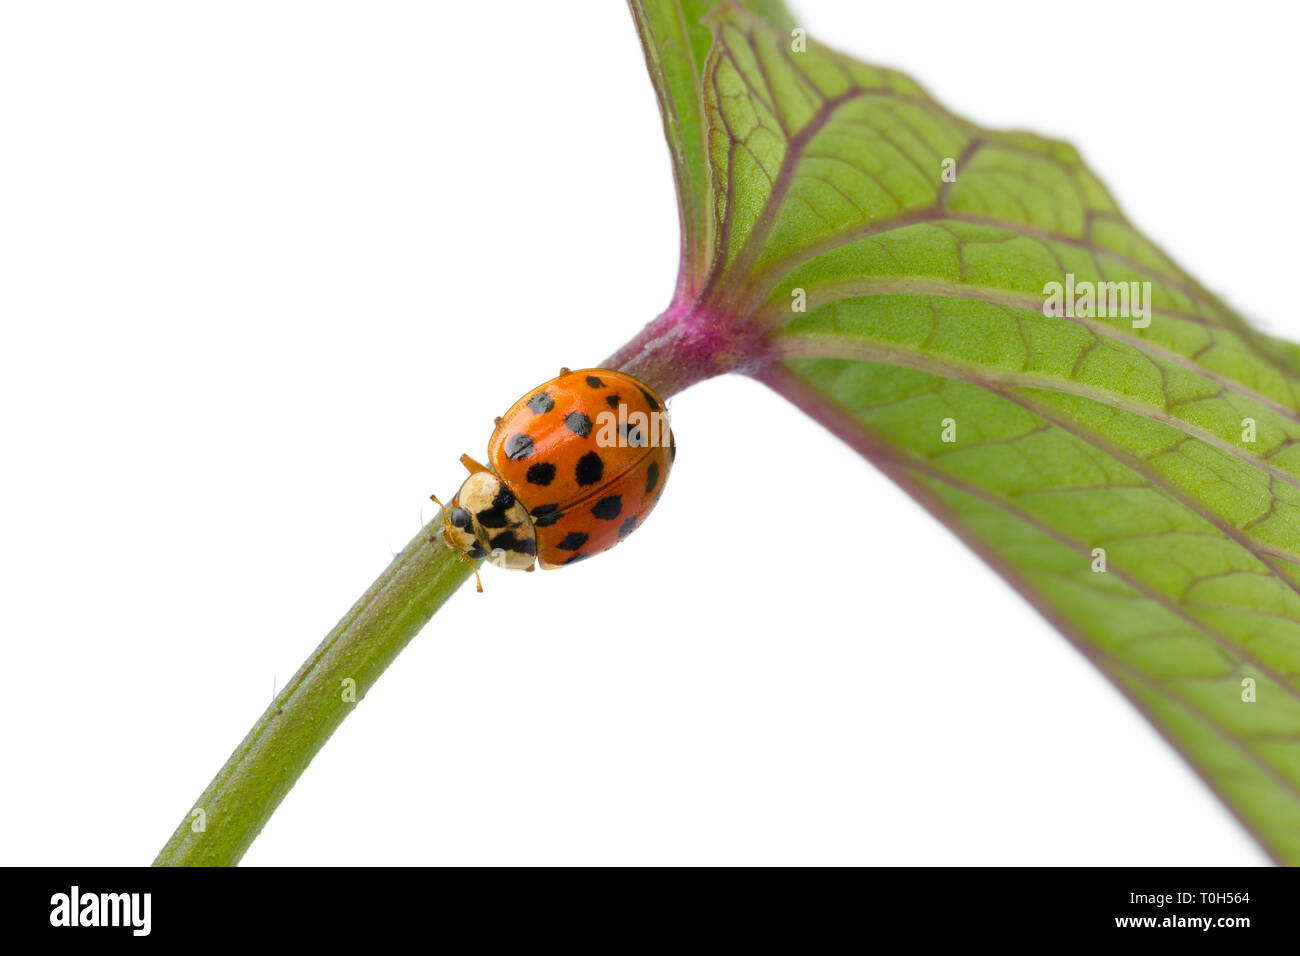 Ladybug on a stem of a plant at white background close up Stock Photo